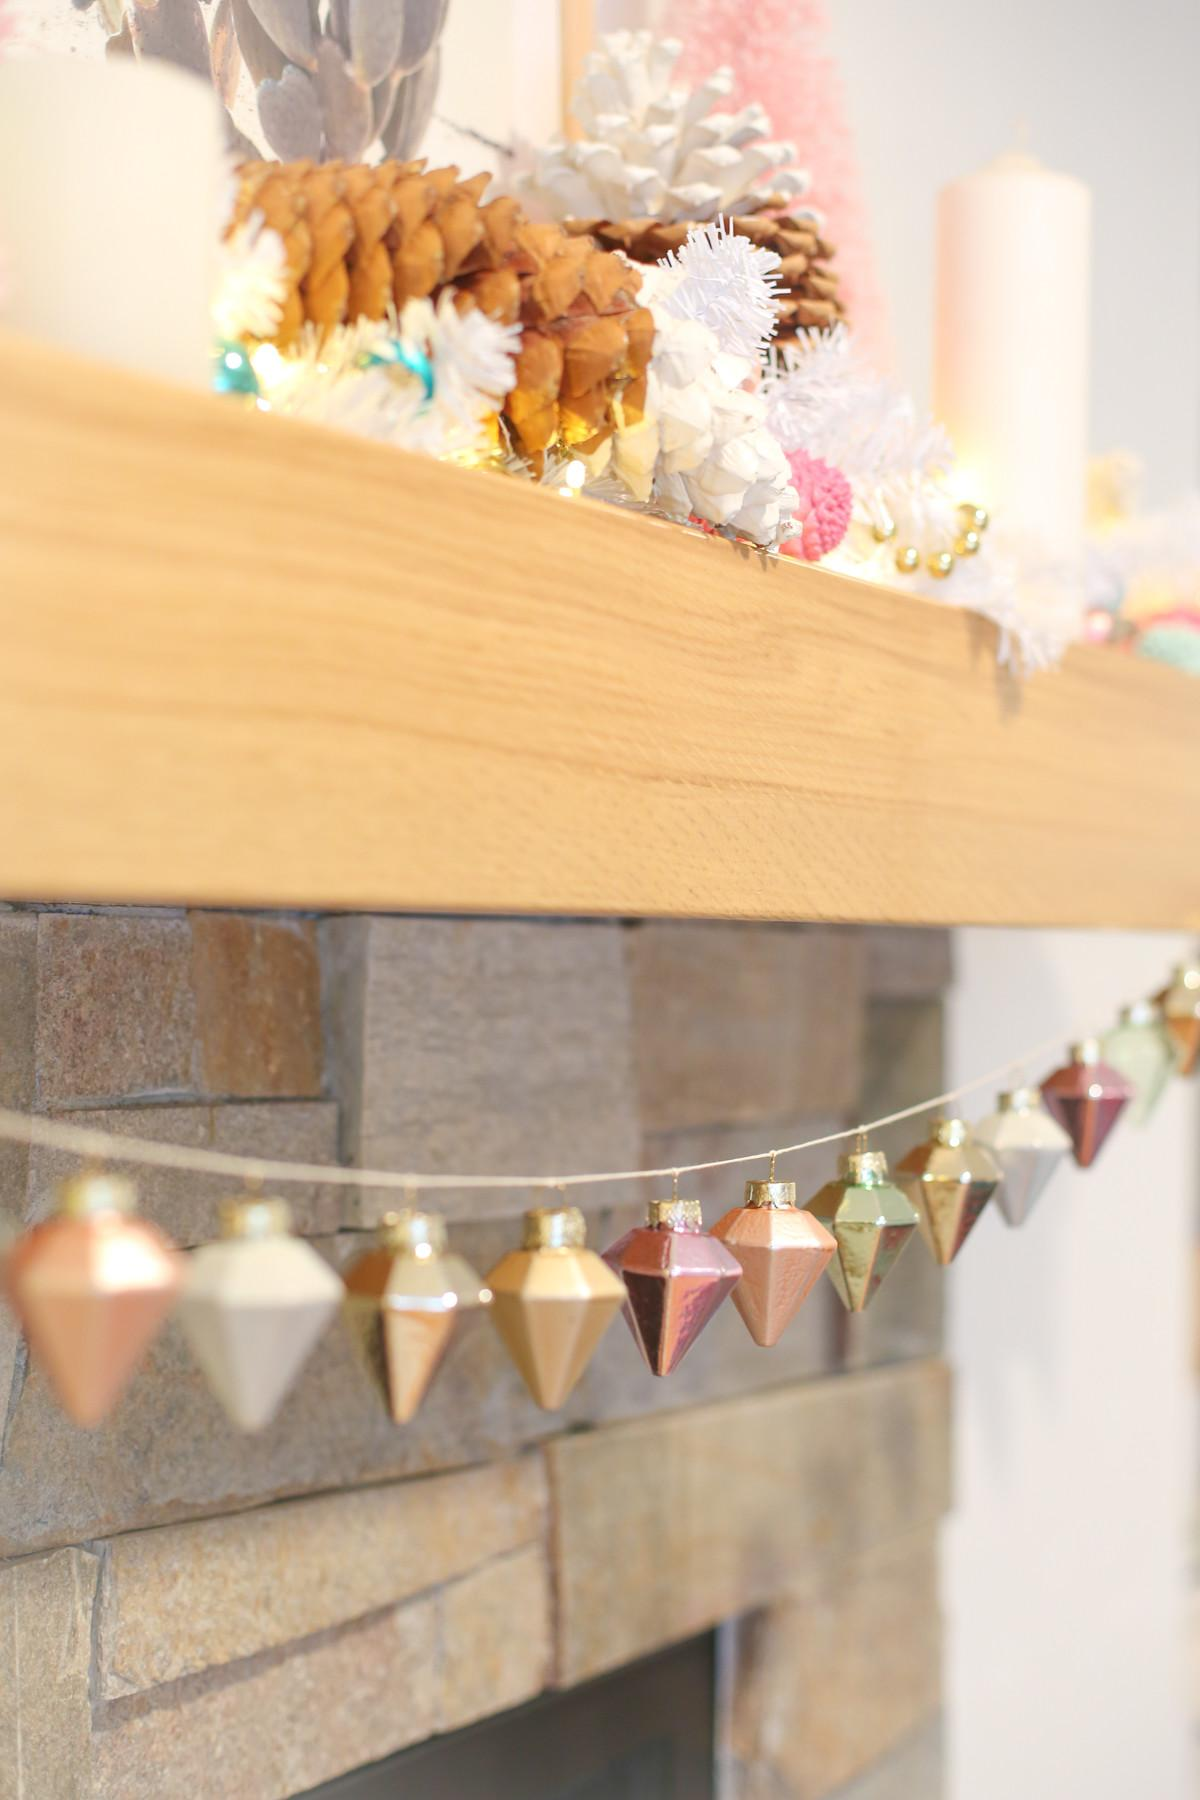 Quick Easy Diy Ornament Garland Your Mantel